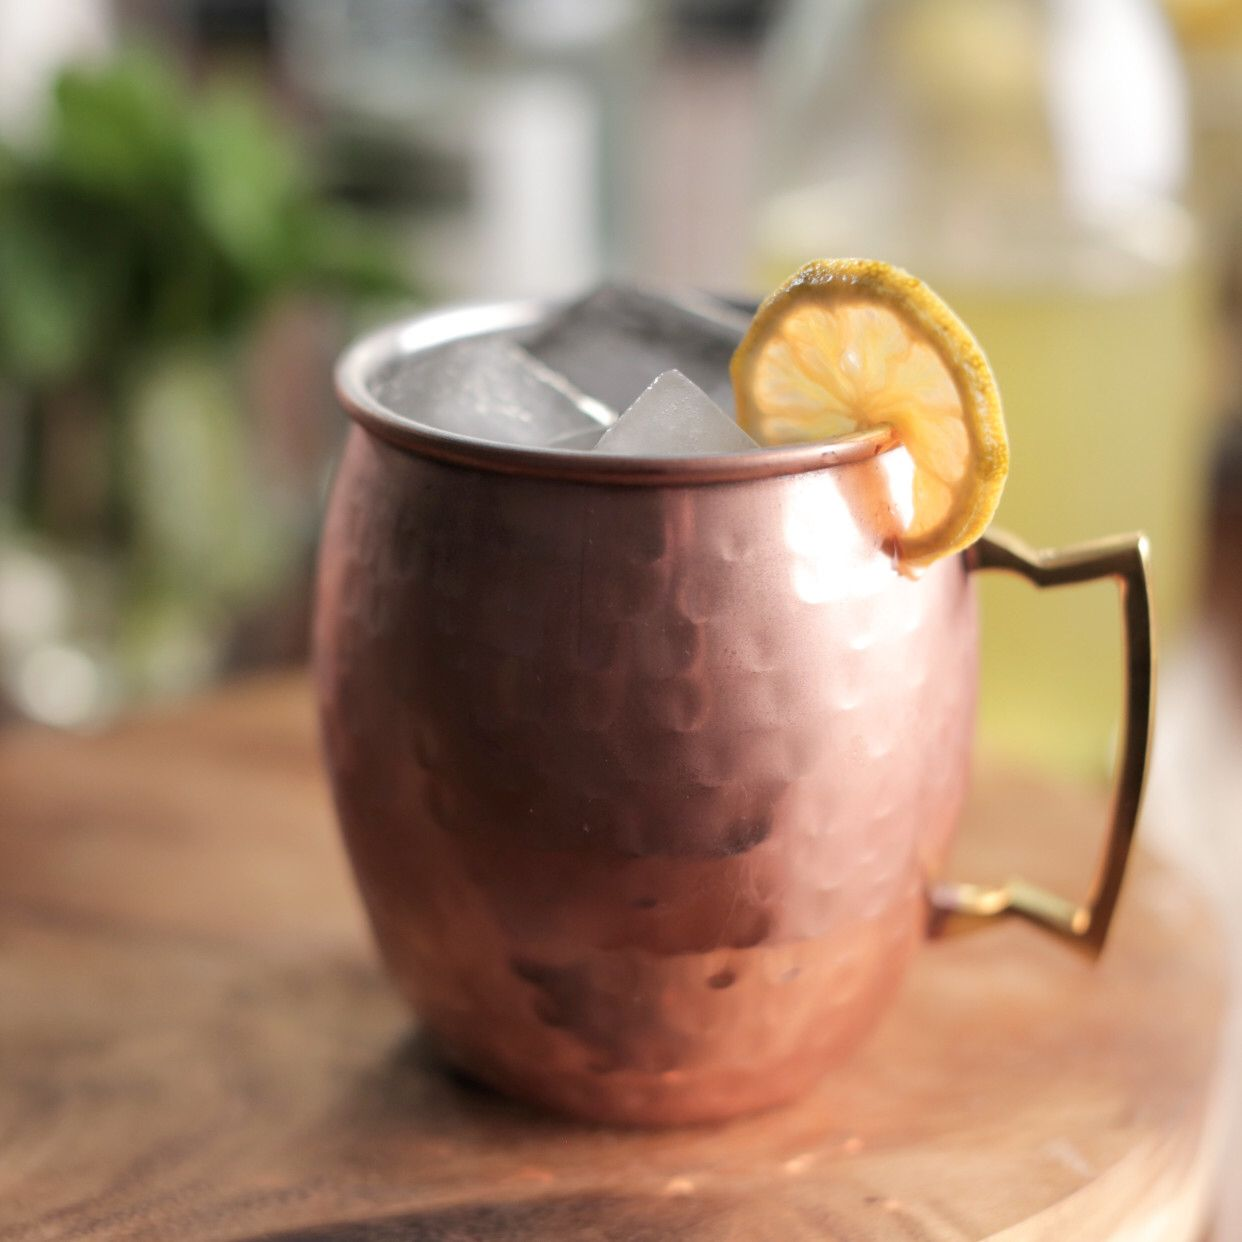 Lemon Moscow Mule Recipe in 2020 Food network recipes